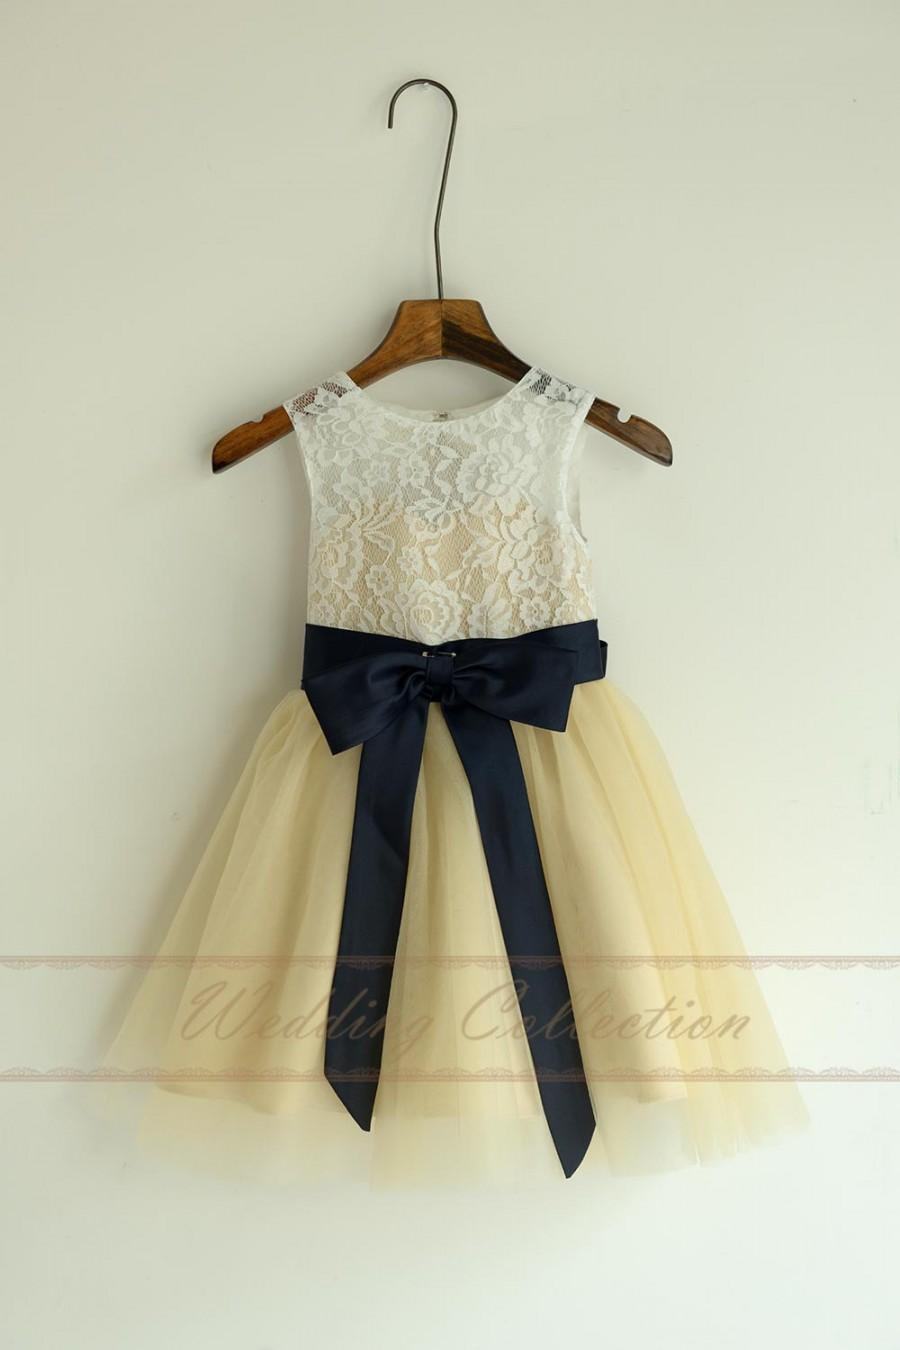 زفاف - Champagned Dress with Ivory Lace Top Flower Girl Dresses, Tulle Flower Girls Dress With Navy Blue Sash and Bow